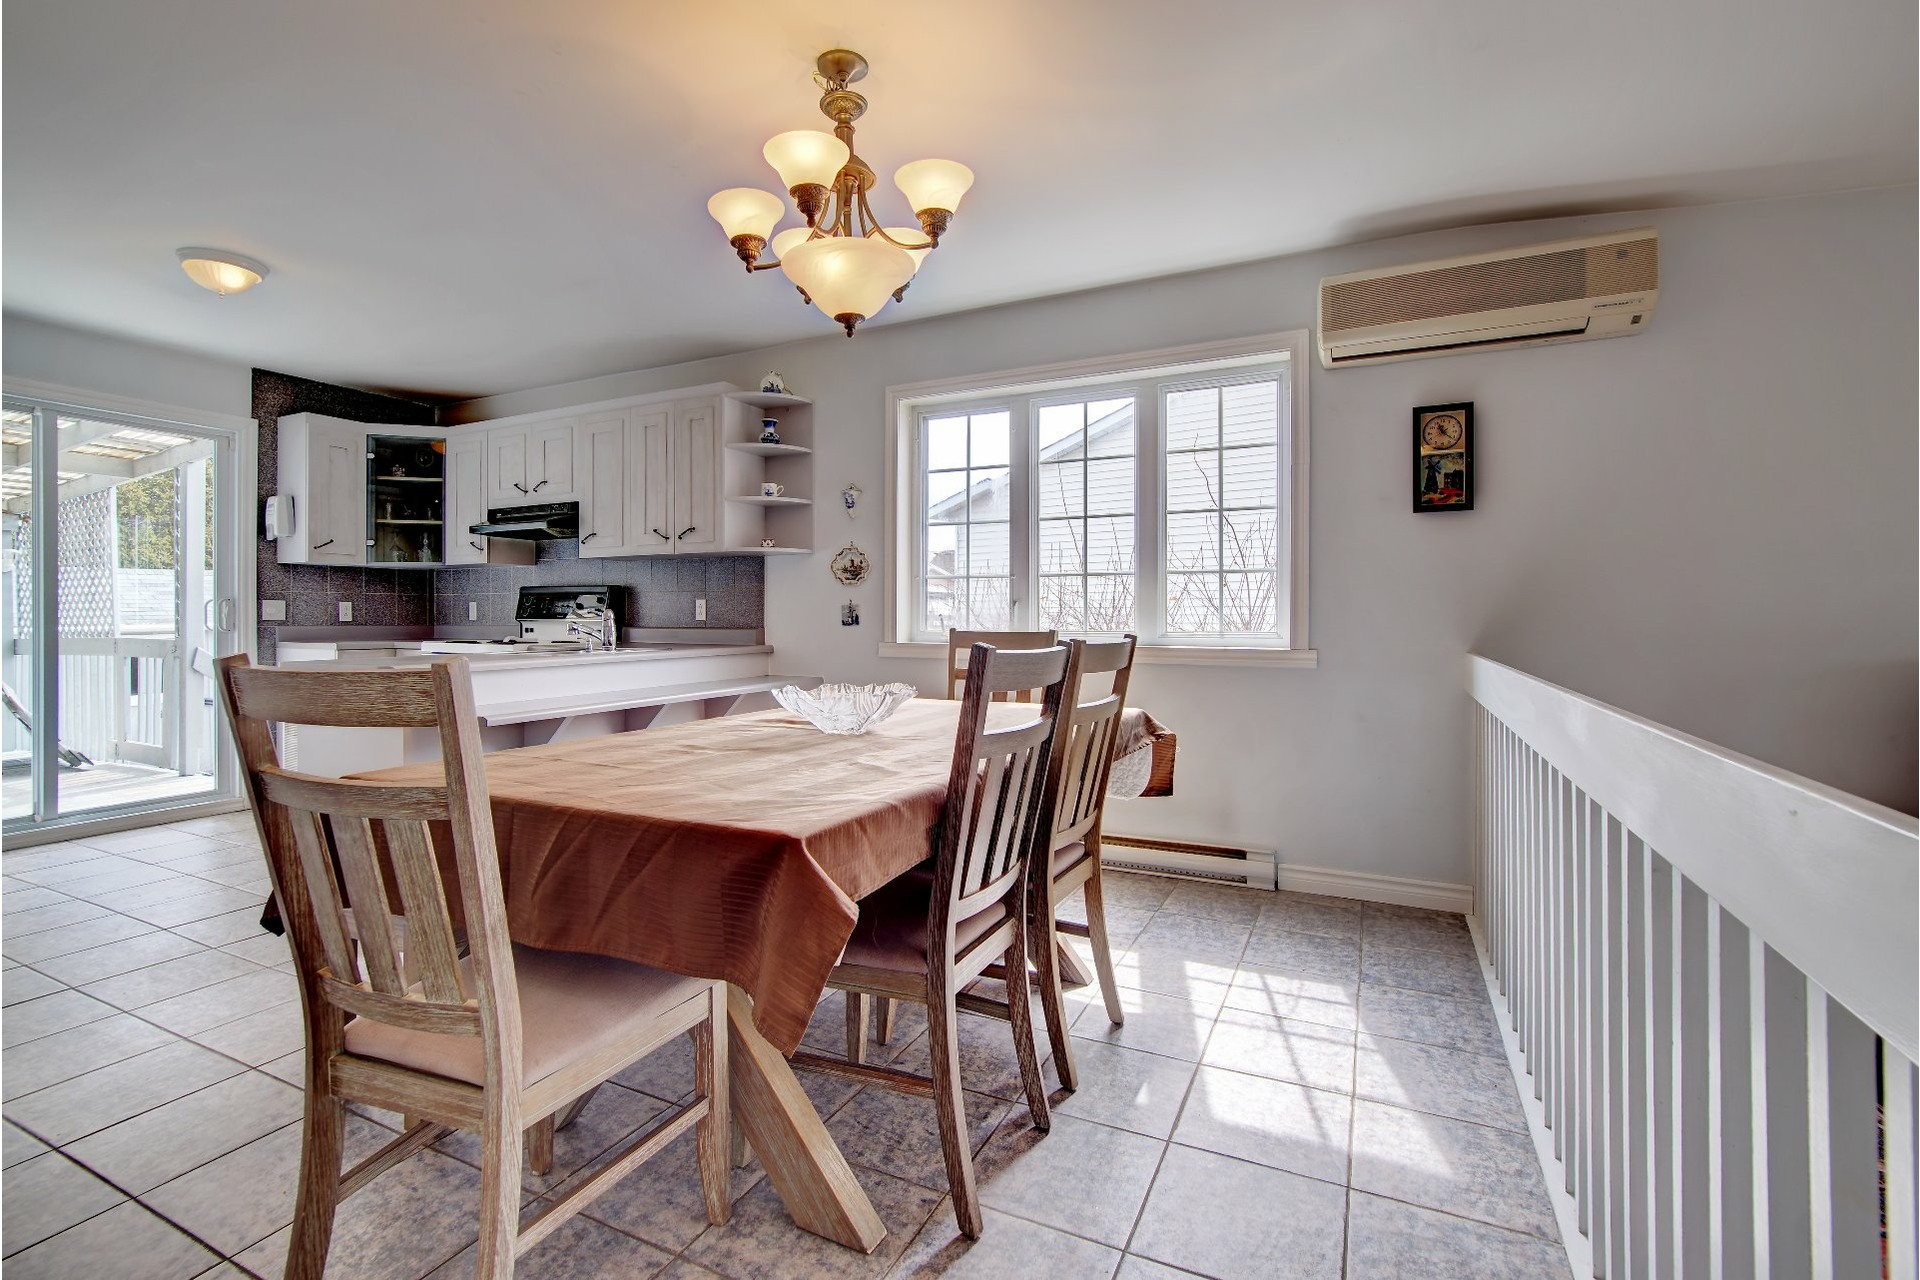 image 8 - House For sale Vaudreuil-Dorion - 11 rooms